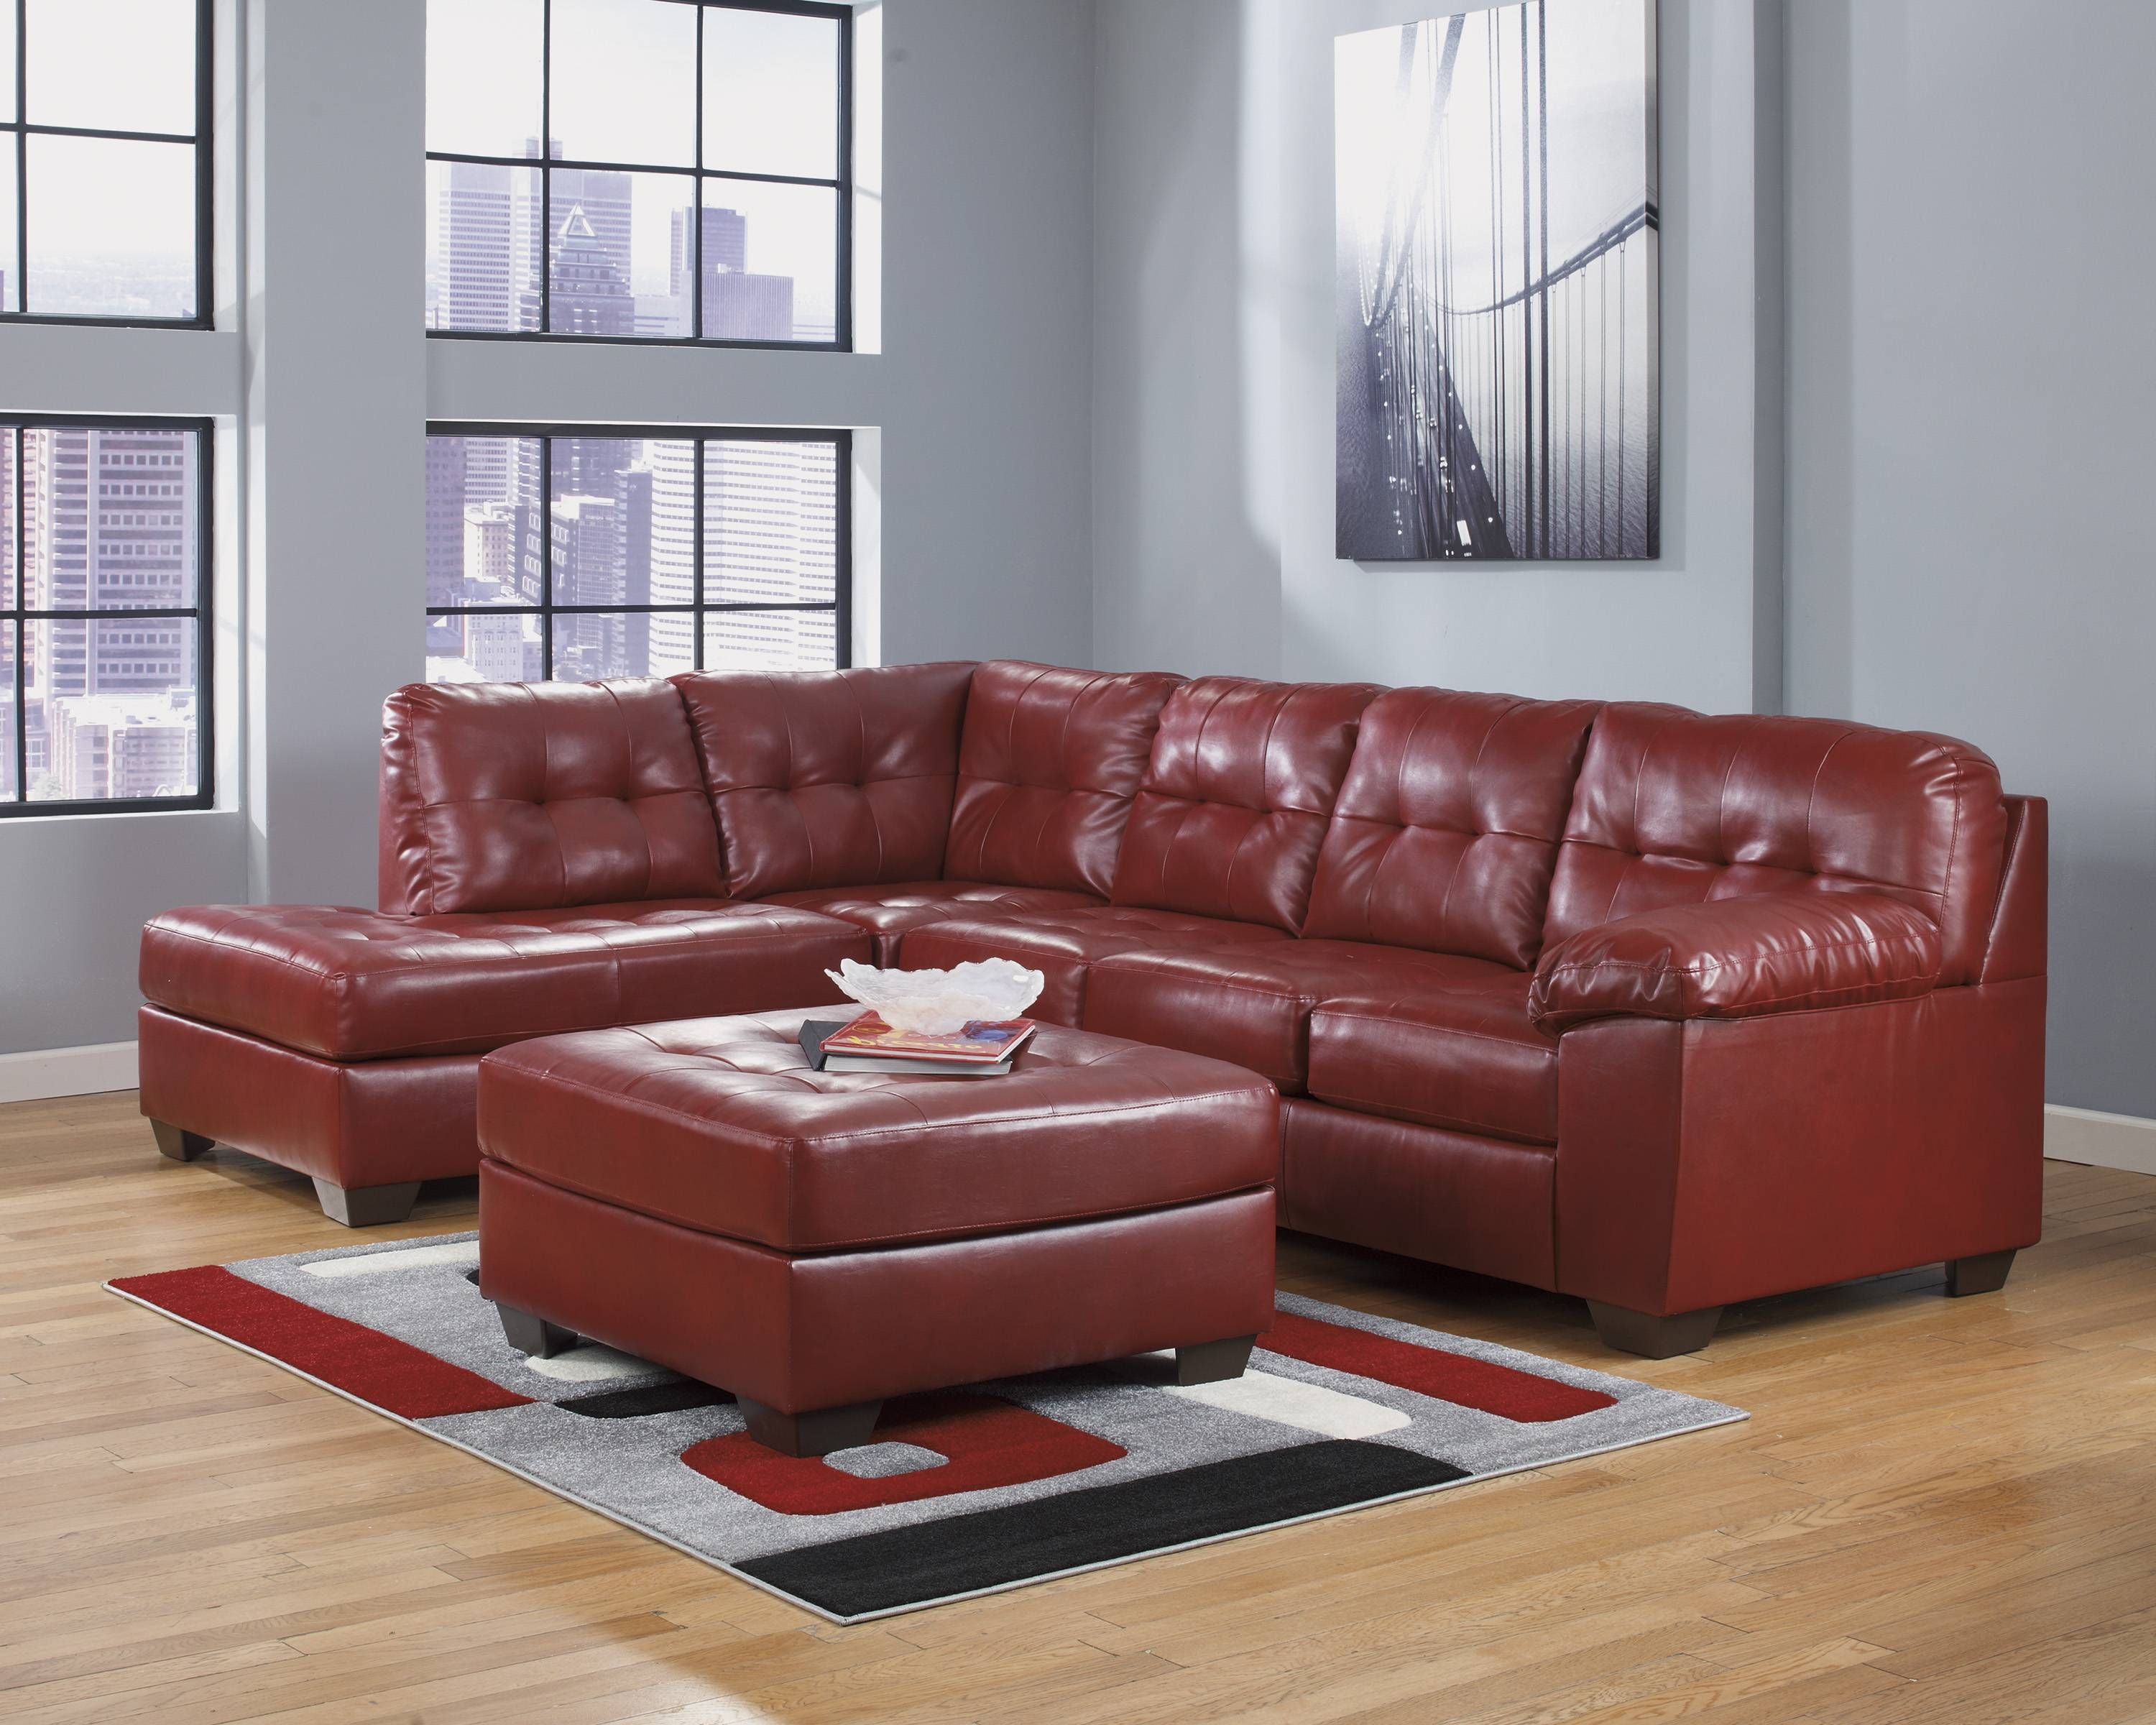 Curved Sectional Sofa Ashley | Tehranmix Decoration Intended For Sectional Sofas Ashley Furniture (View 5 of 15)